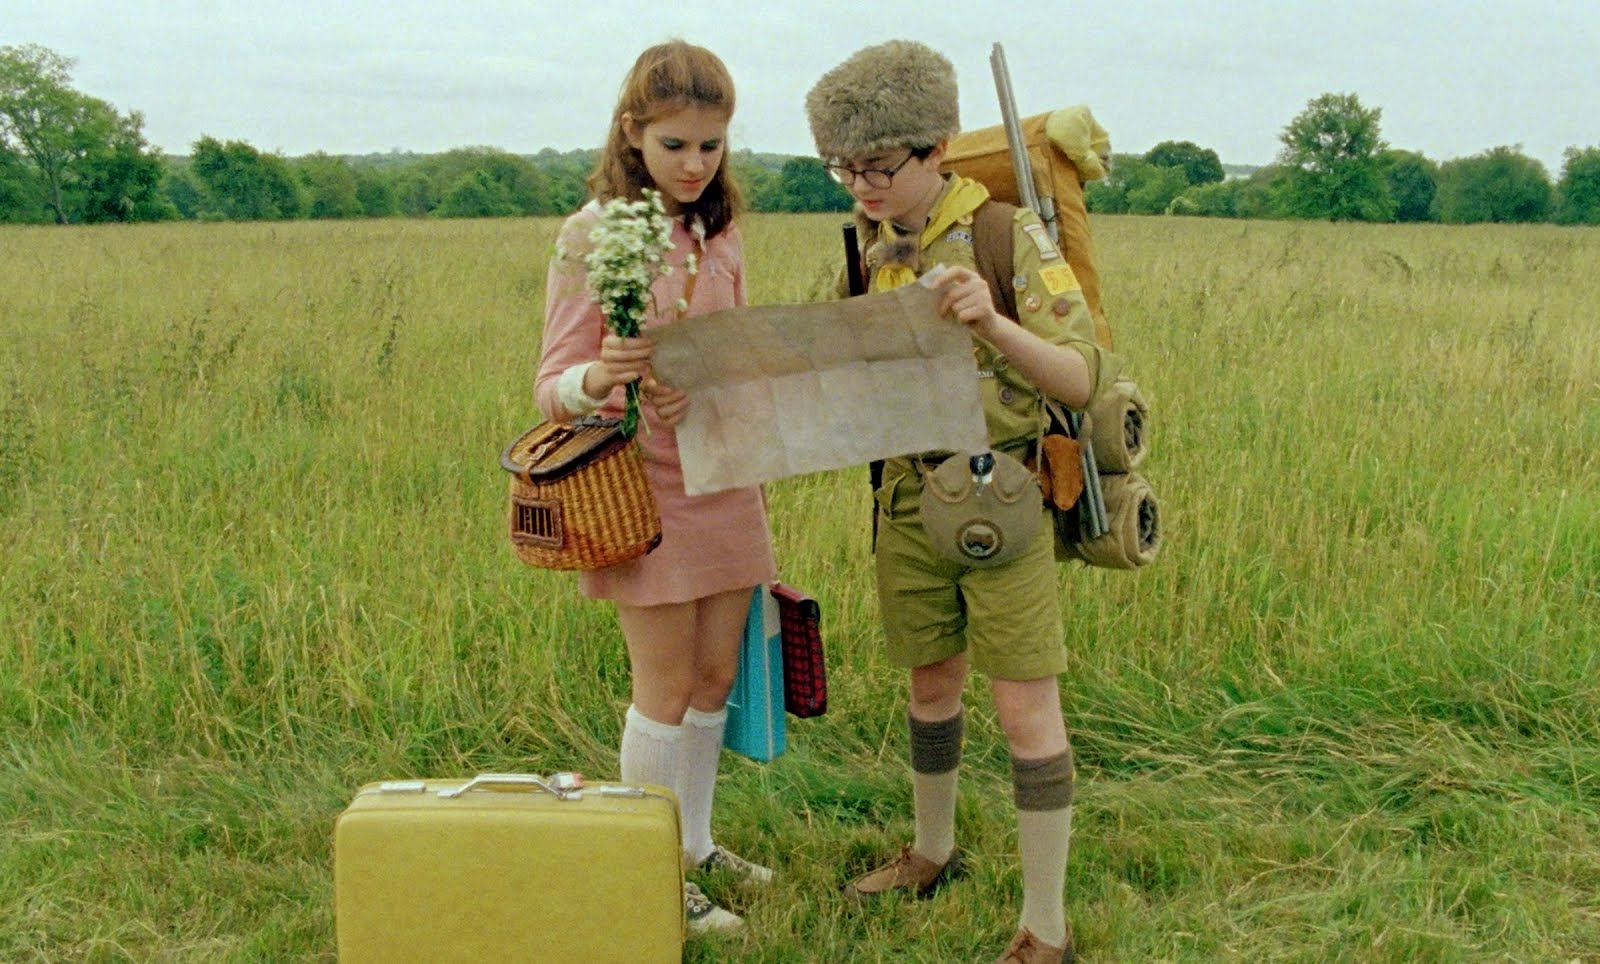 Retromantisch Wes Anderson Moonrise Kingdom Suzy Bishop pink dress collar